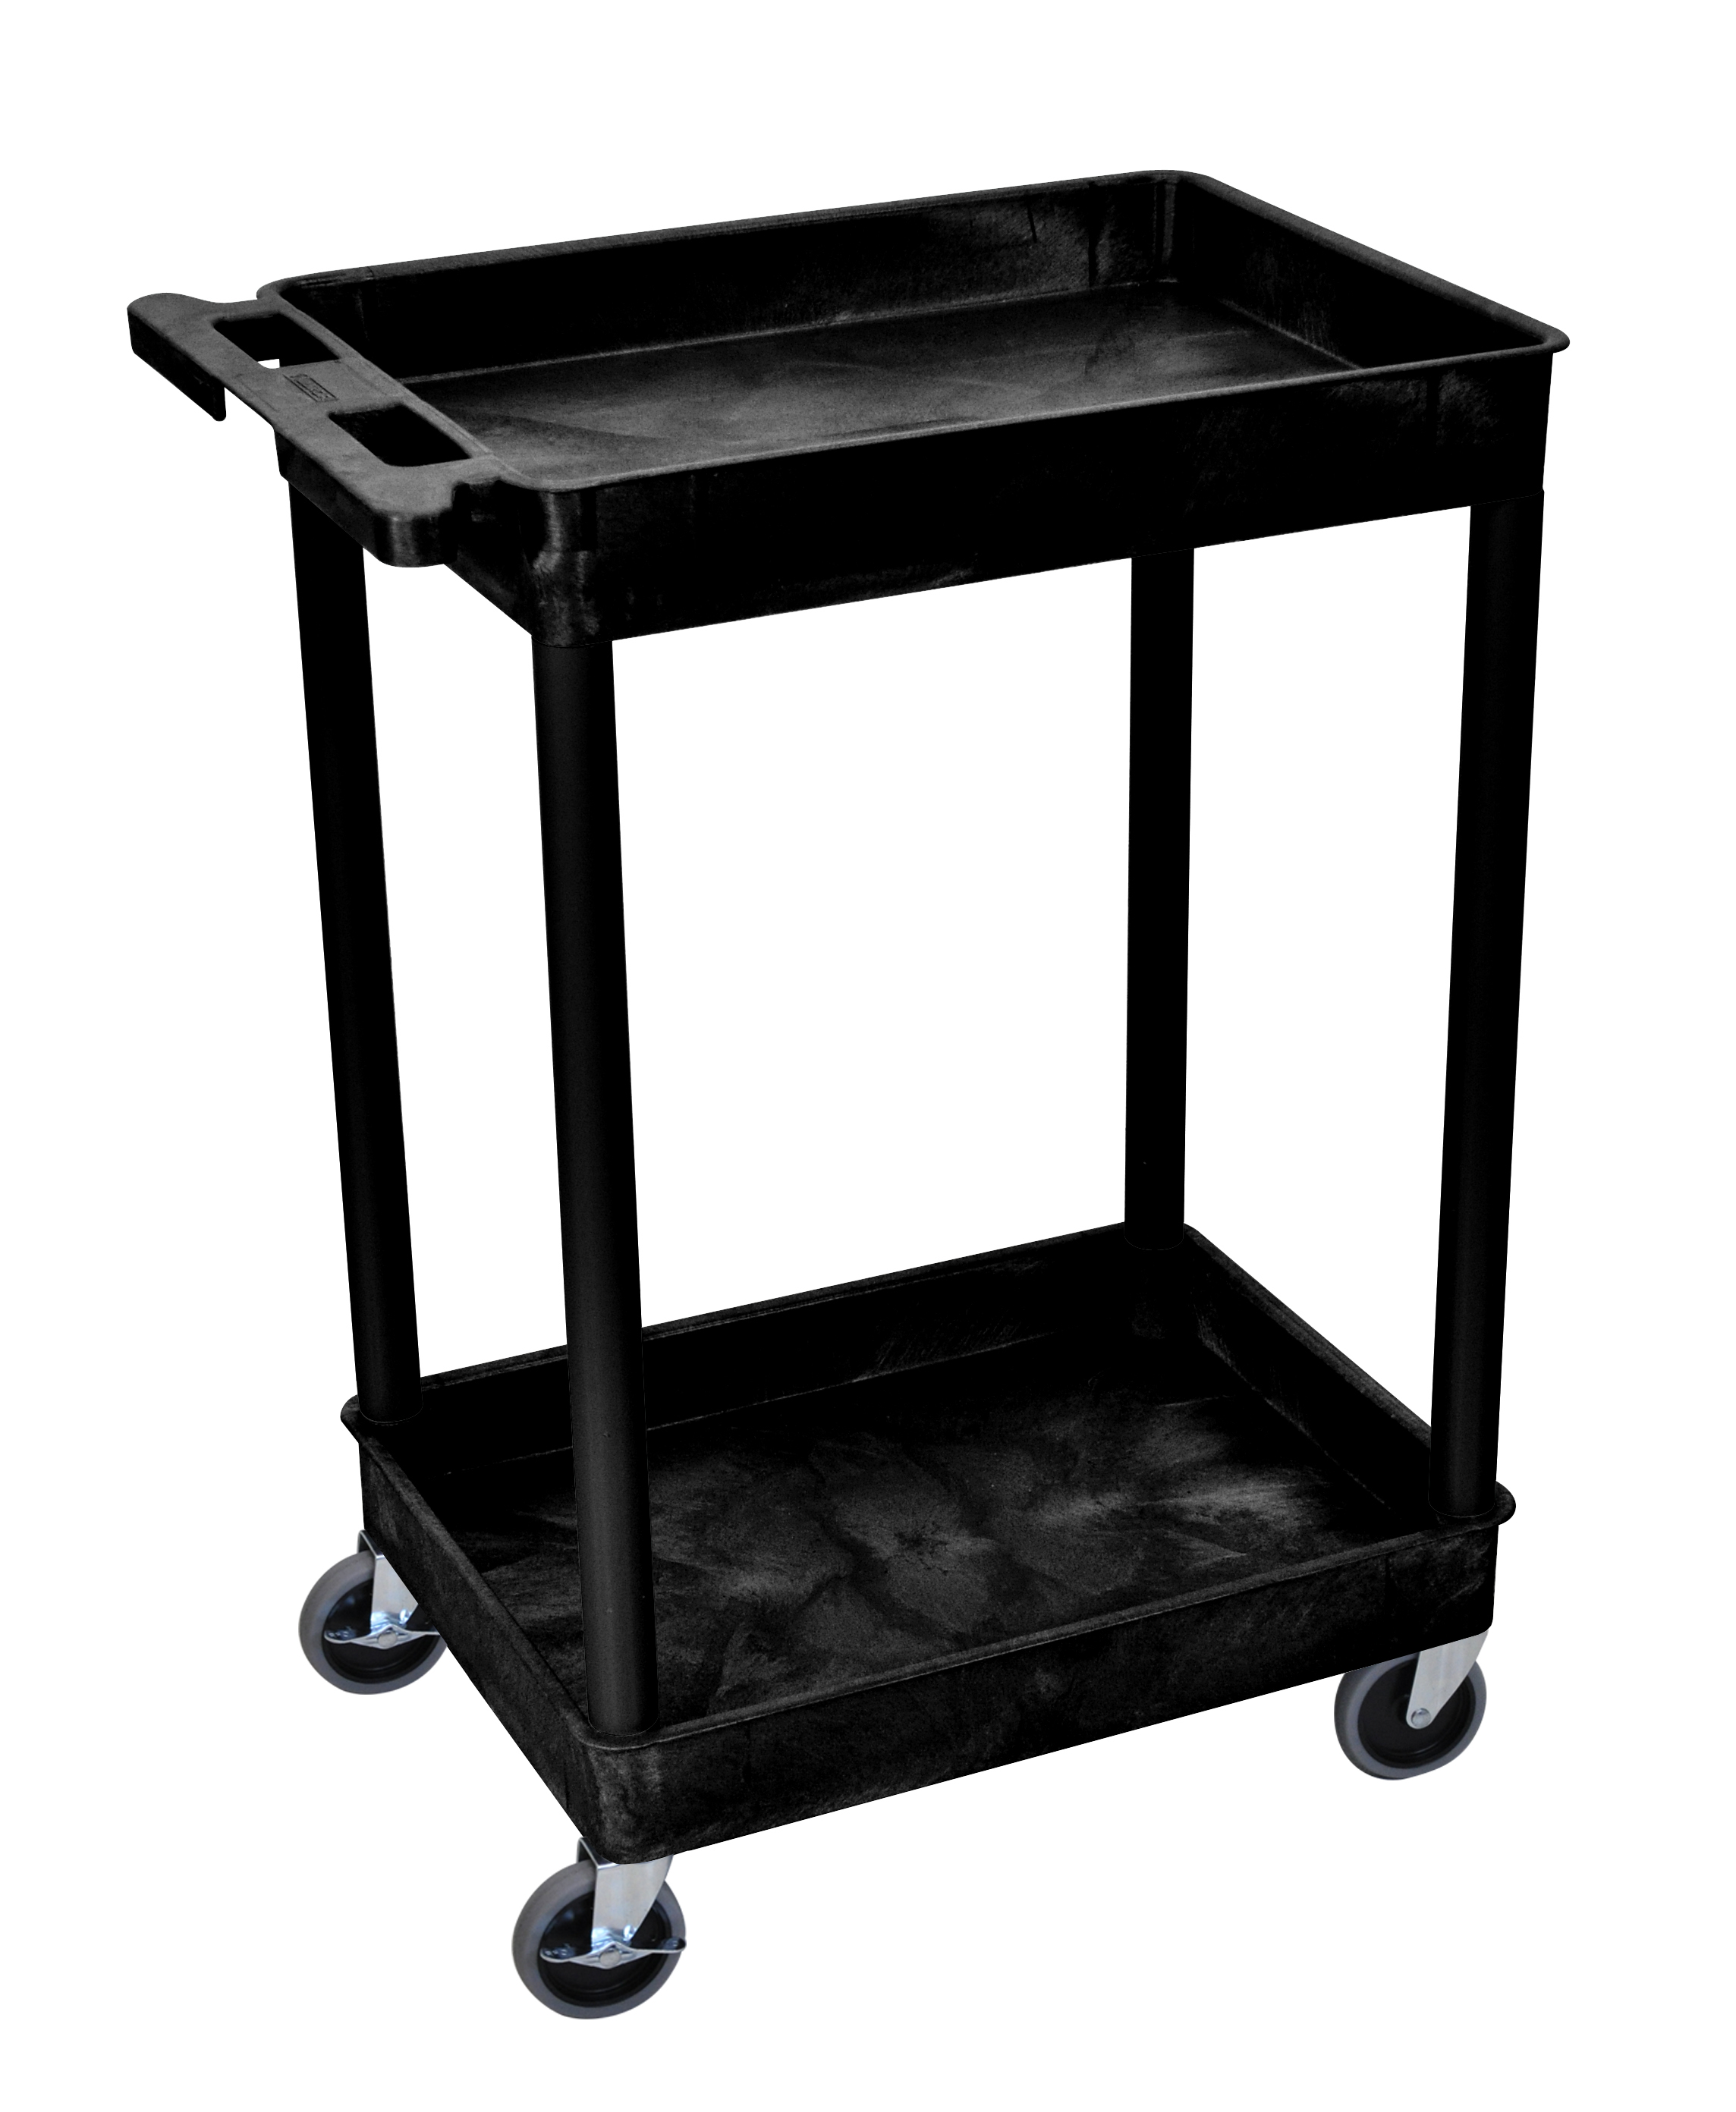 Plastic Utility Cart with 2 tub shelves